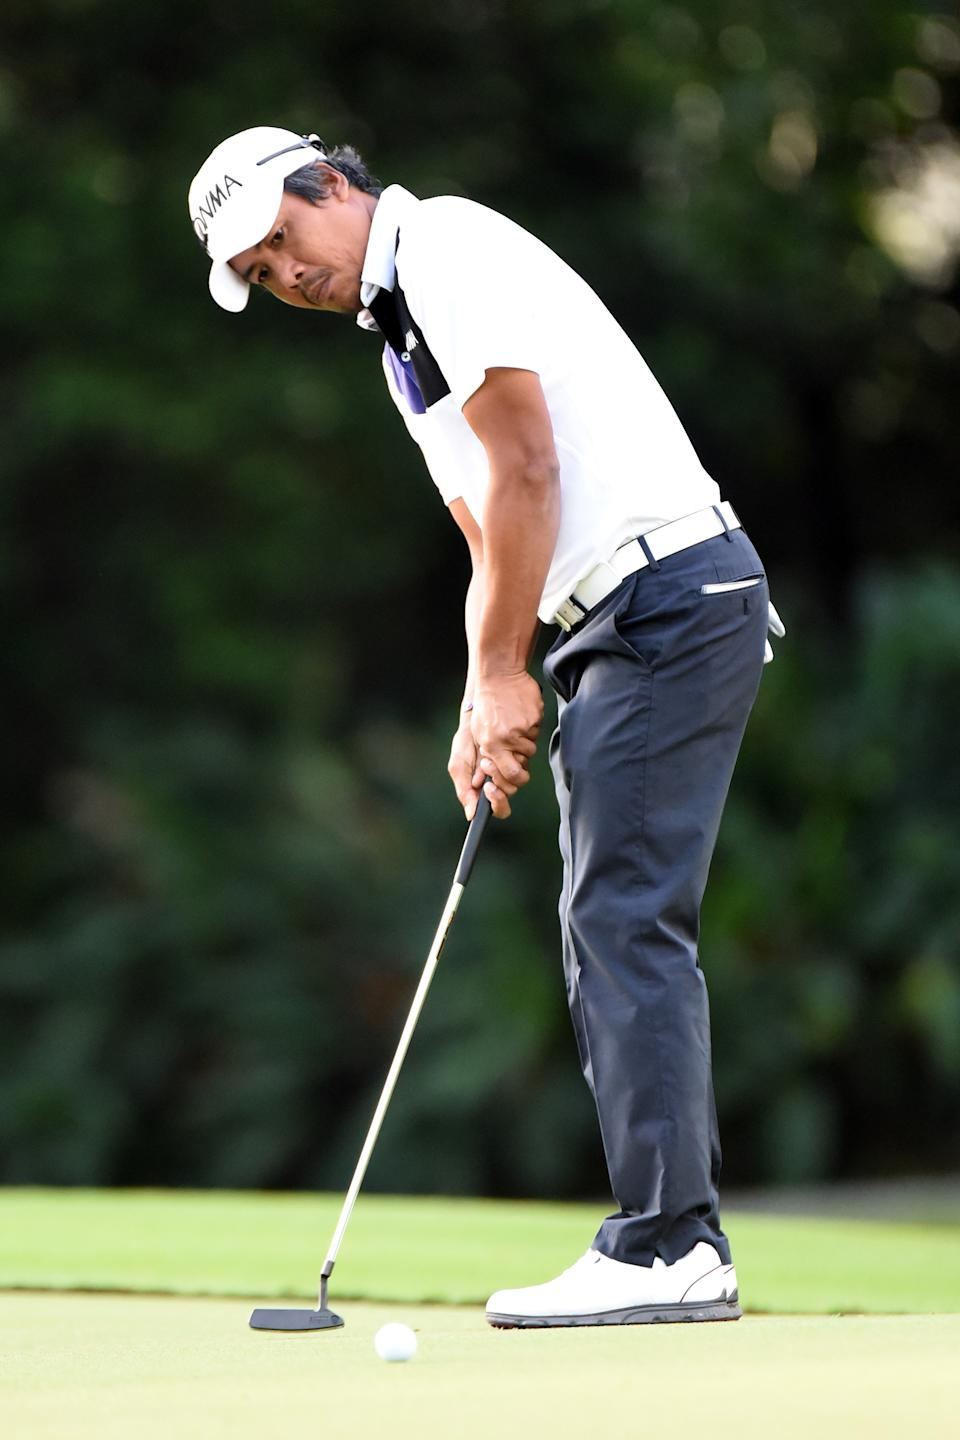 KUALA LUMPUR, MALAYSIA - FEBRUARY 18:  Juvic Pagunsan of the Philippines putts on the 2nd hole during the first round of the Maybank Championship Malaysia at Royal Selangor Golf Club on February 18, 2016 in Kuala Lumpur, Malaysia.  (Photo by Stanley Chou/Getty Images)